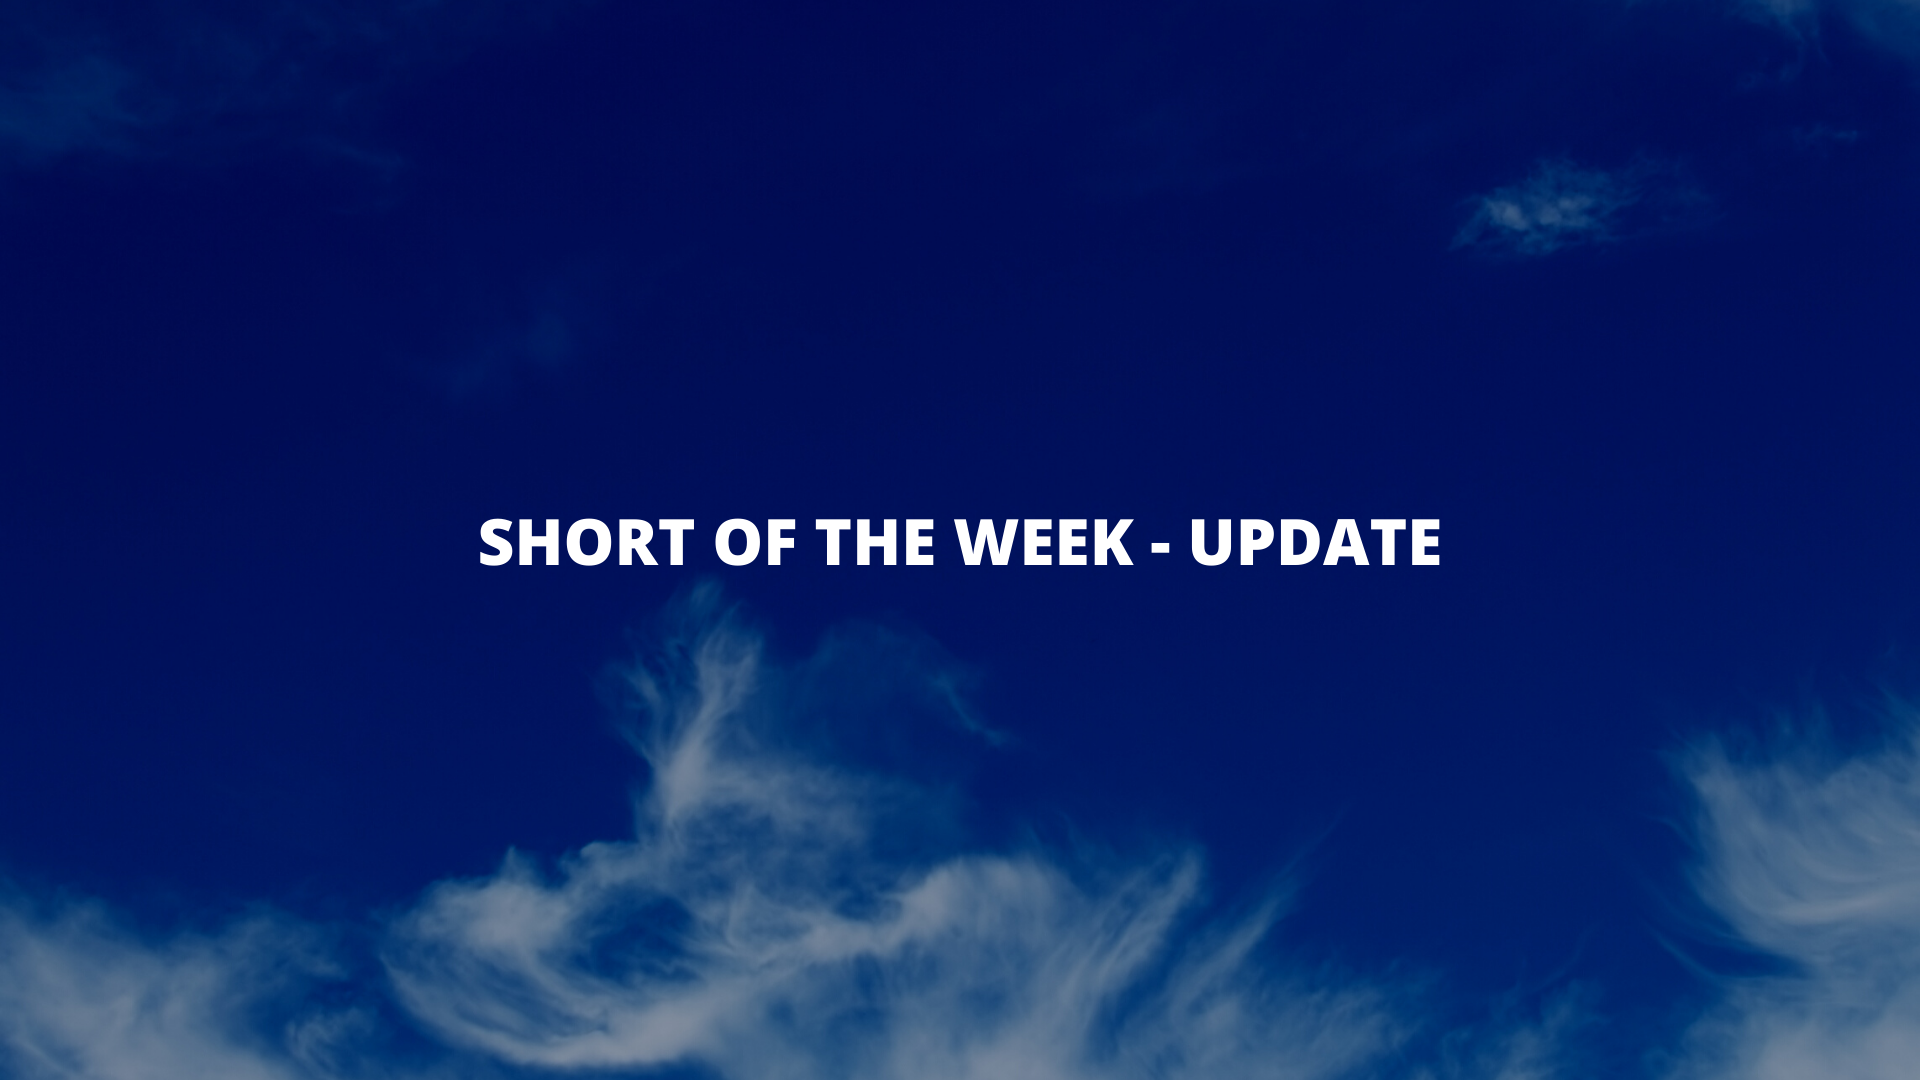 Short of the Week Update